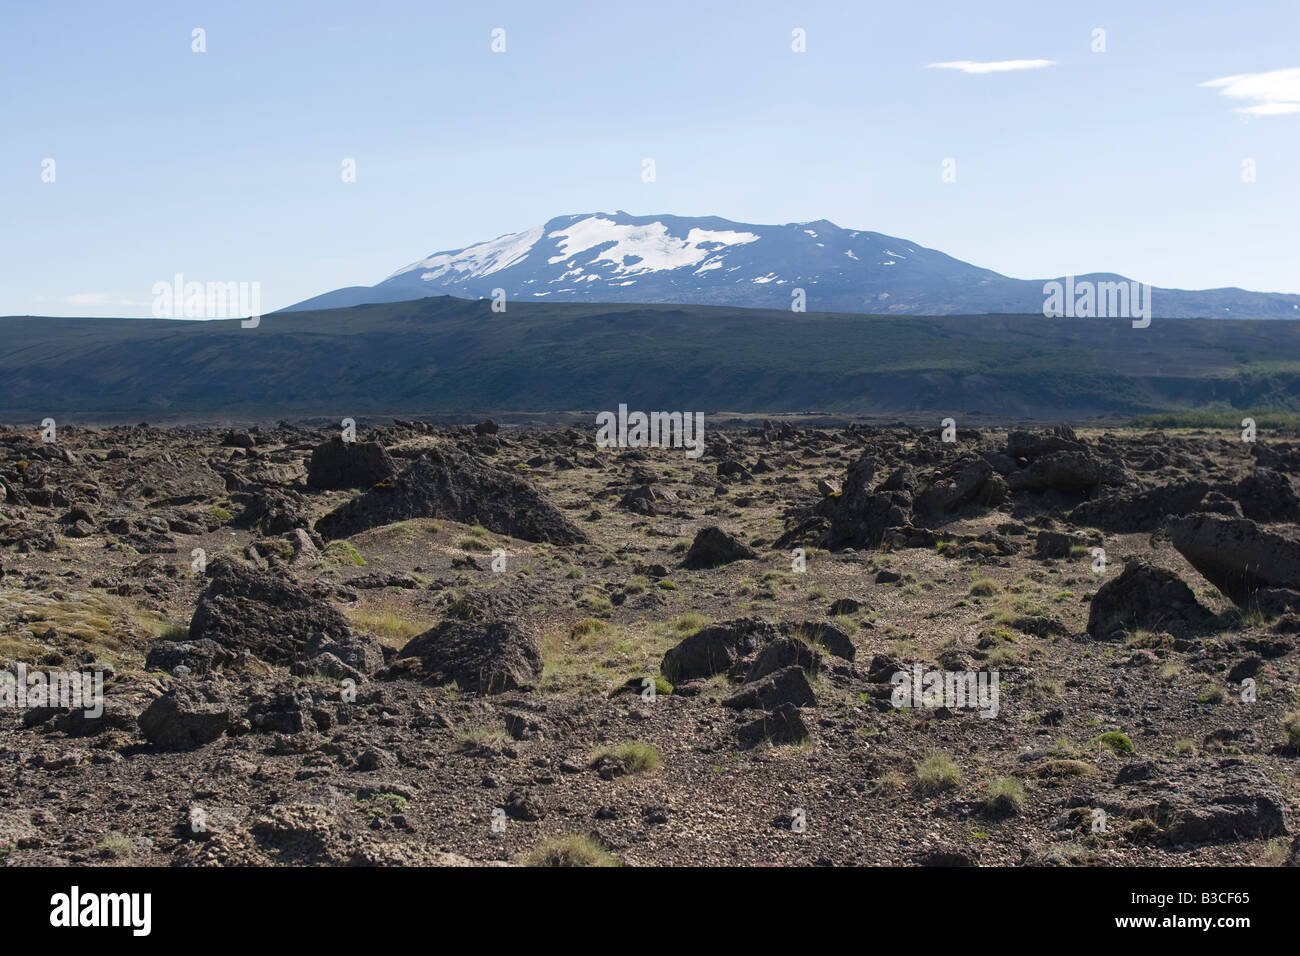 Lava field and Hekla active volcano, Iceland - Stock Image